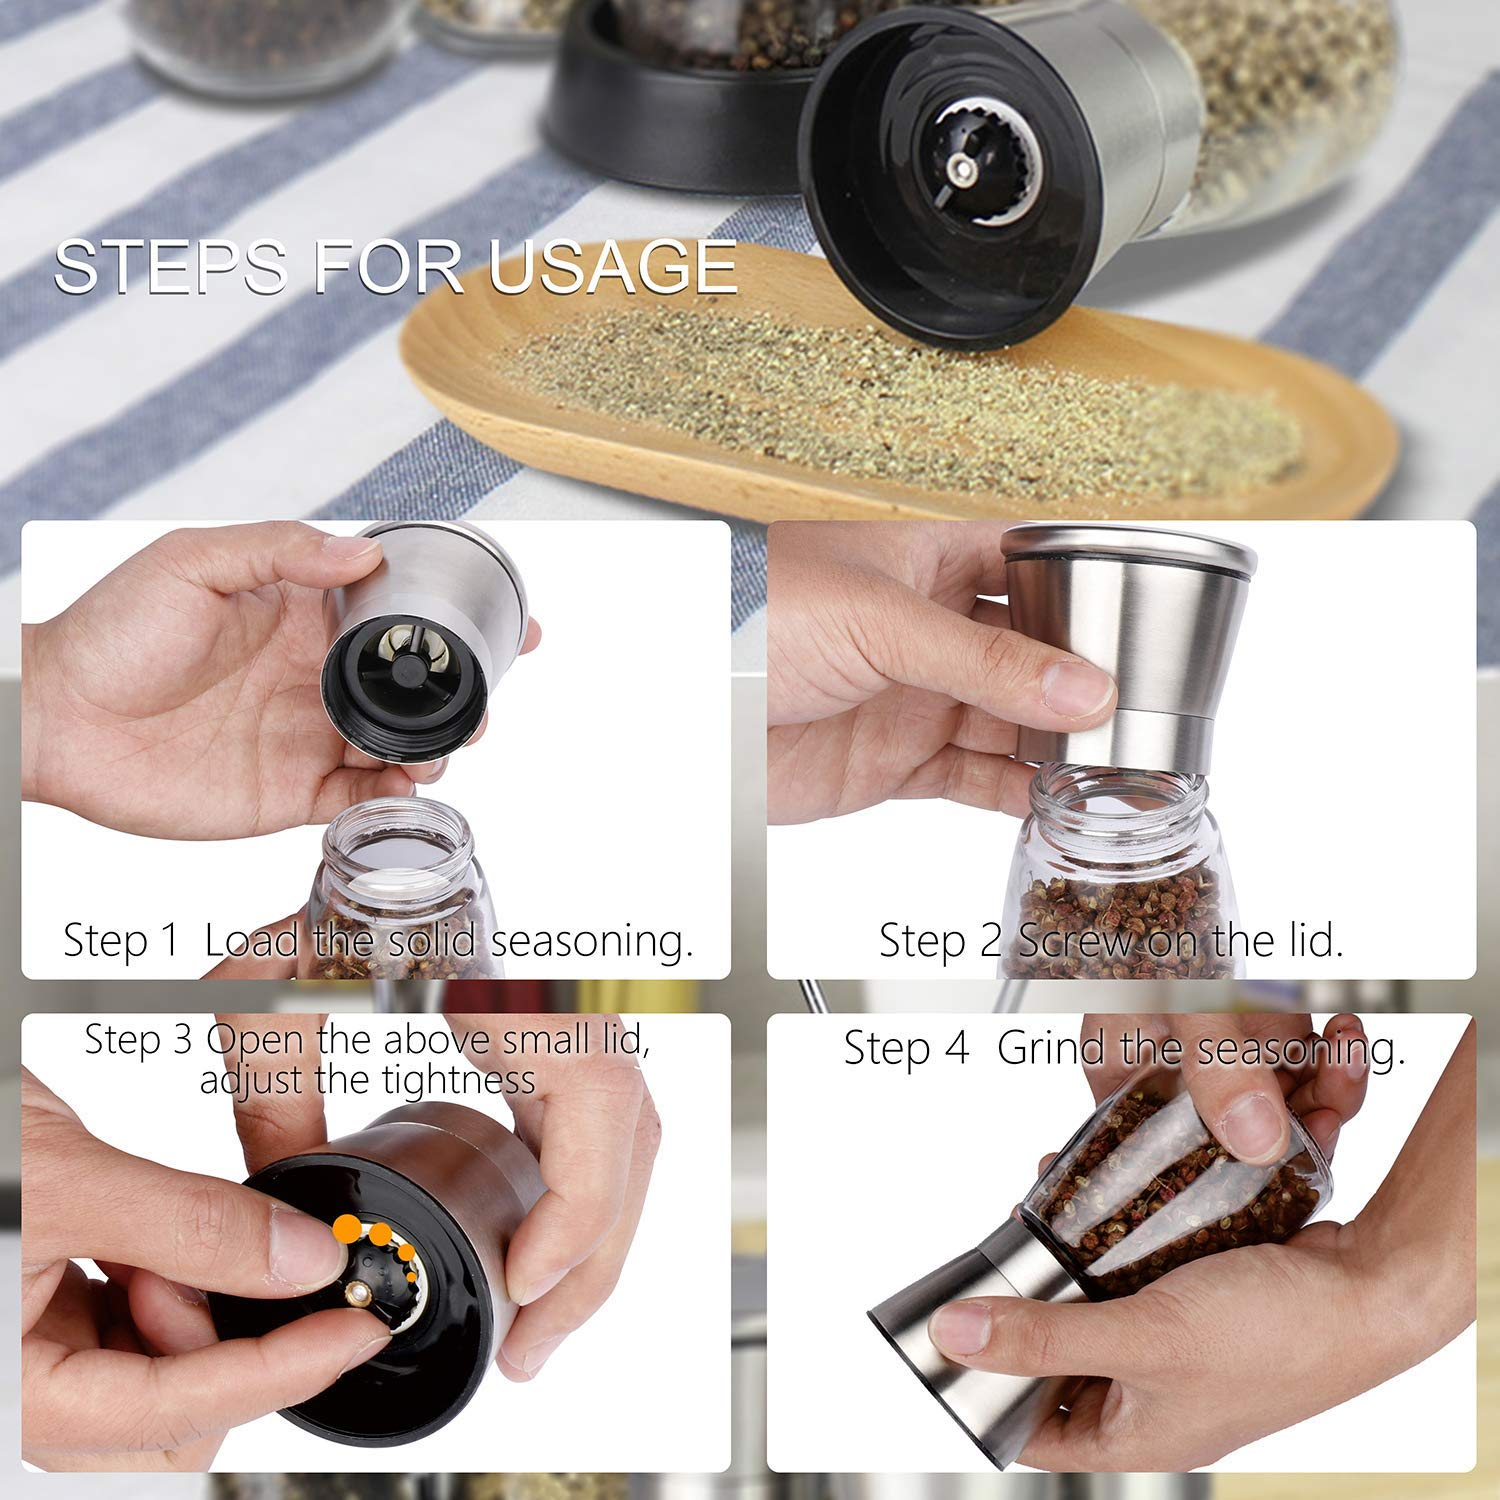 Glass Body and Brushed Stainless Steel Salt and Pepper Shakers By Quinn Martin Salt and Pepper Grinder Set Gritin Set of 2 Premium Stainless Steel Salt and Pepper Mills Adjustable Coarseness